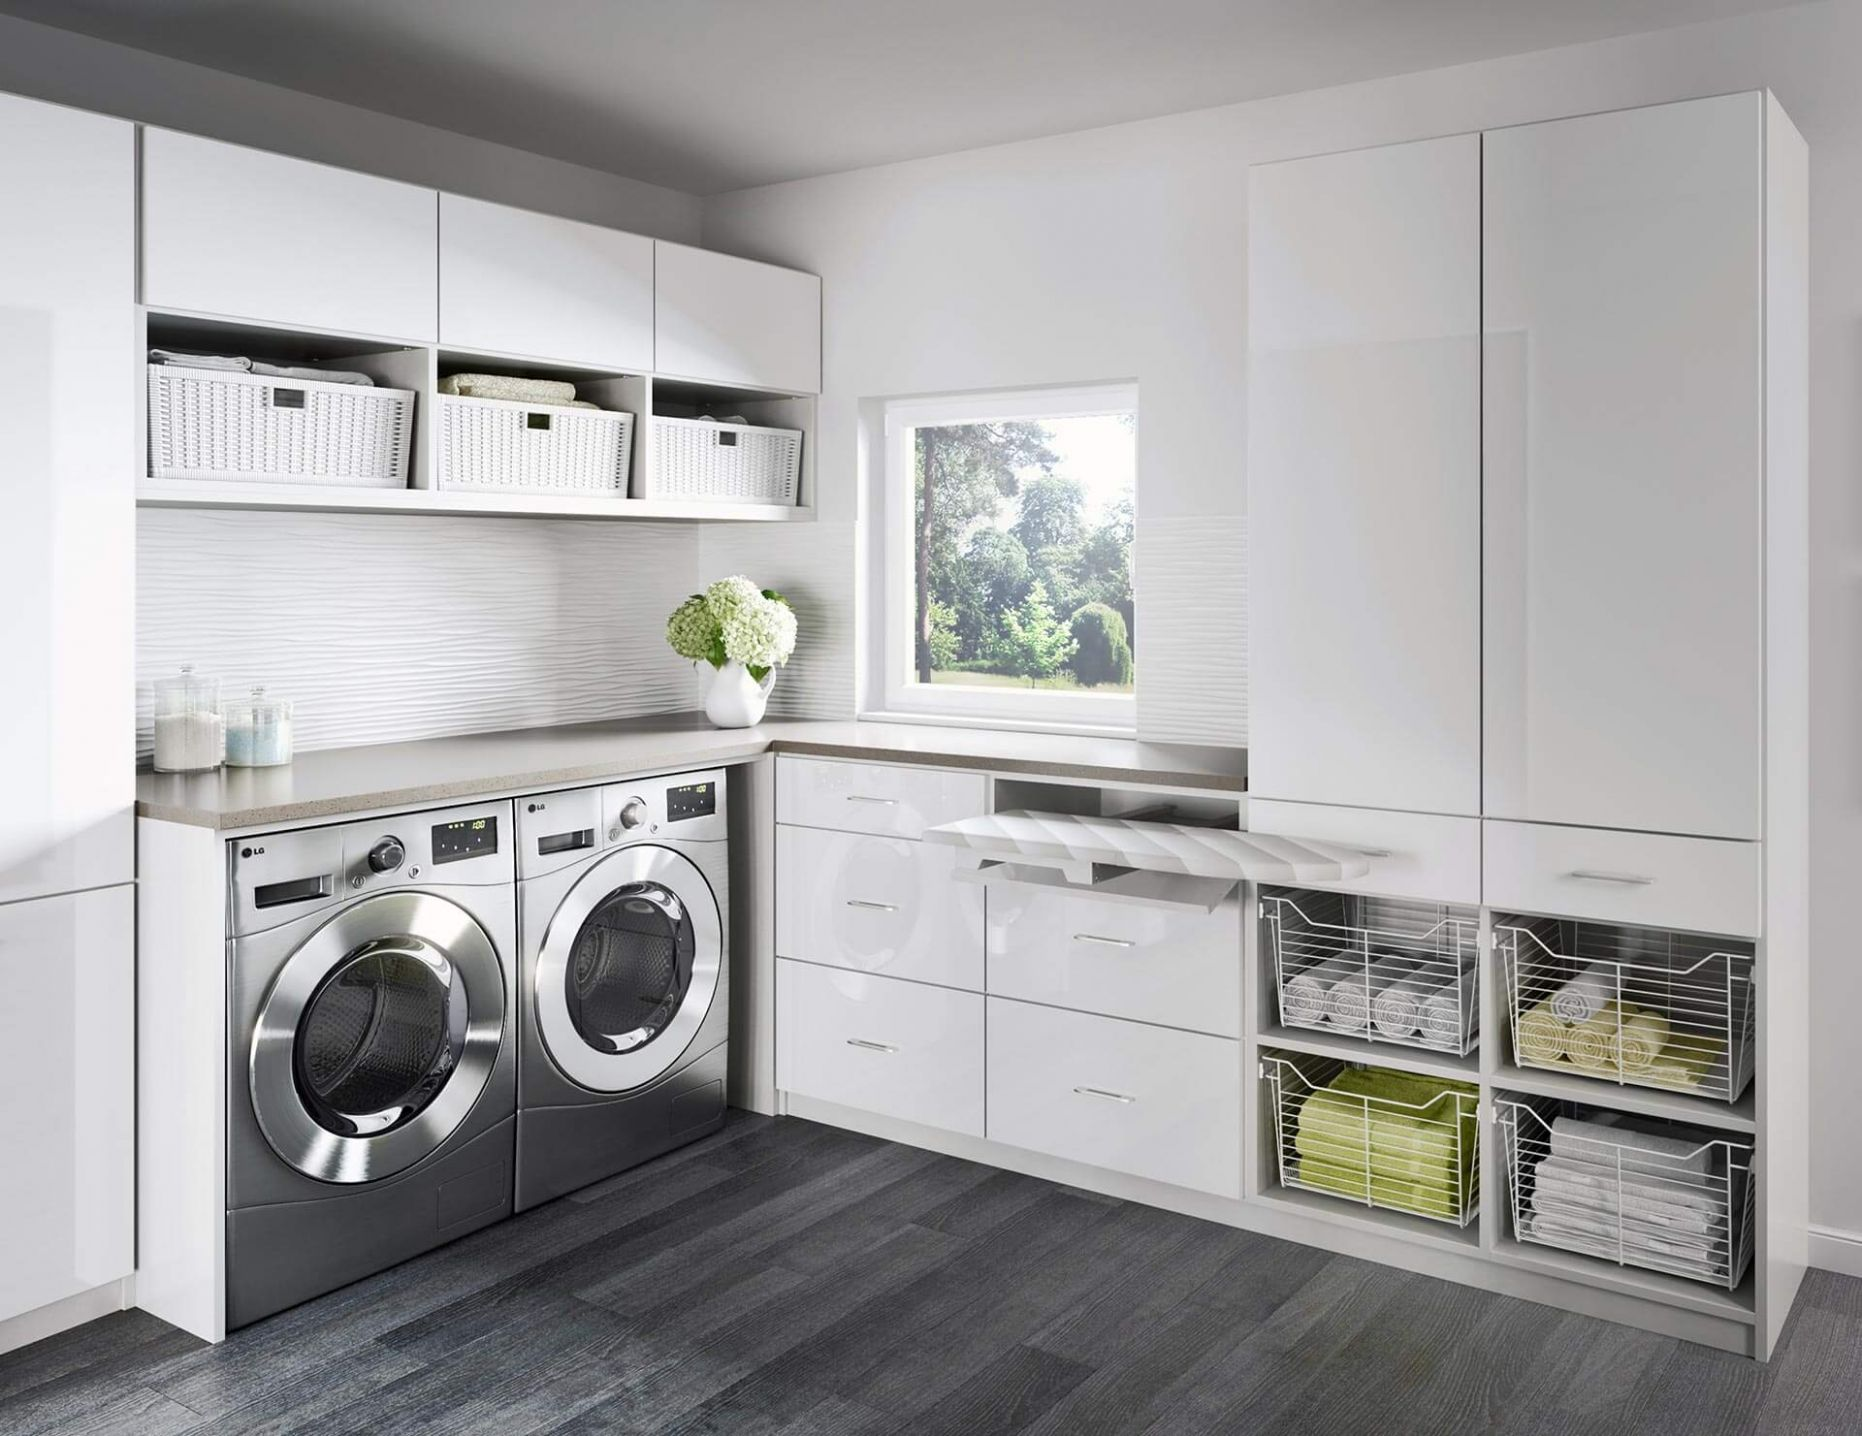 Modern Laundry Room Ideas for Small Spaces [ Updated 11 ] - laundry room ideas small spaces